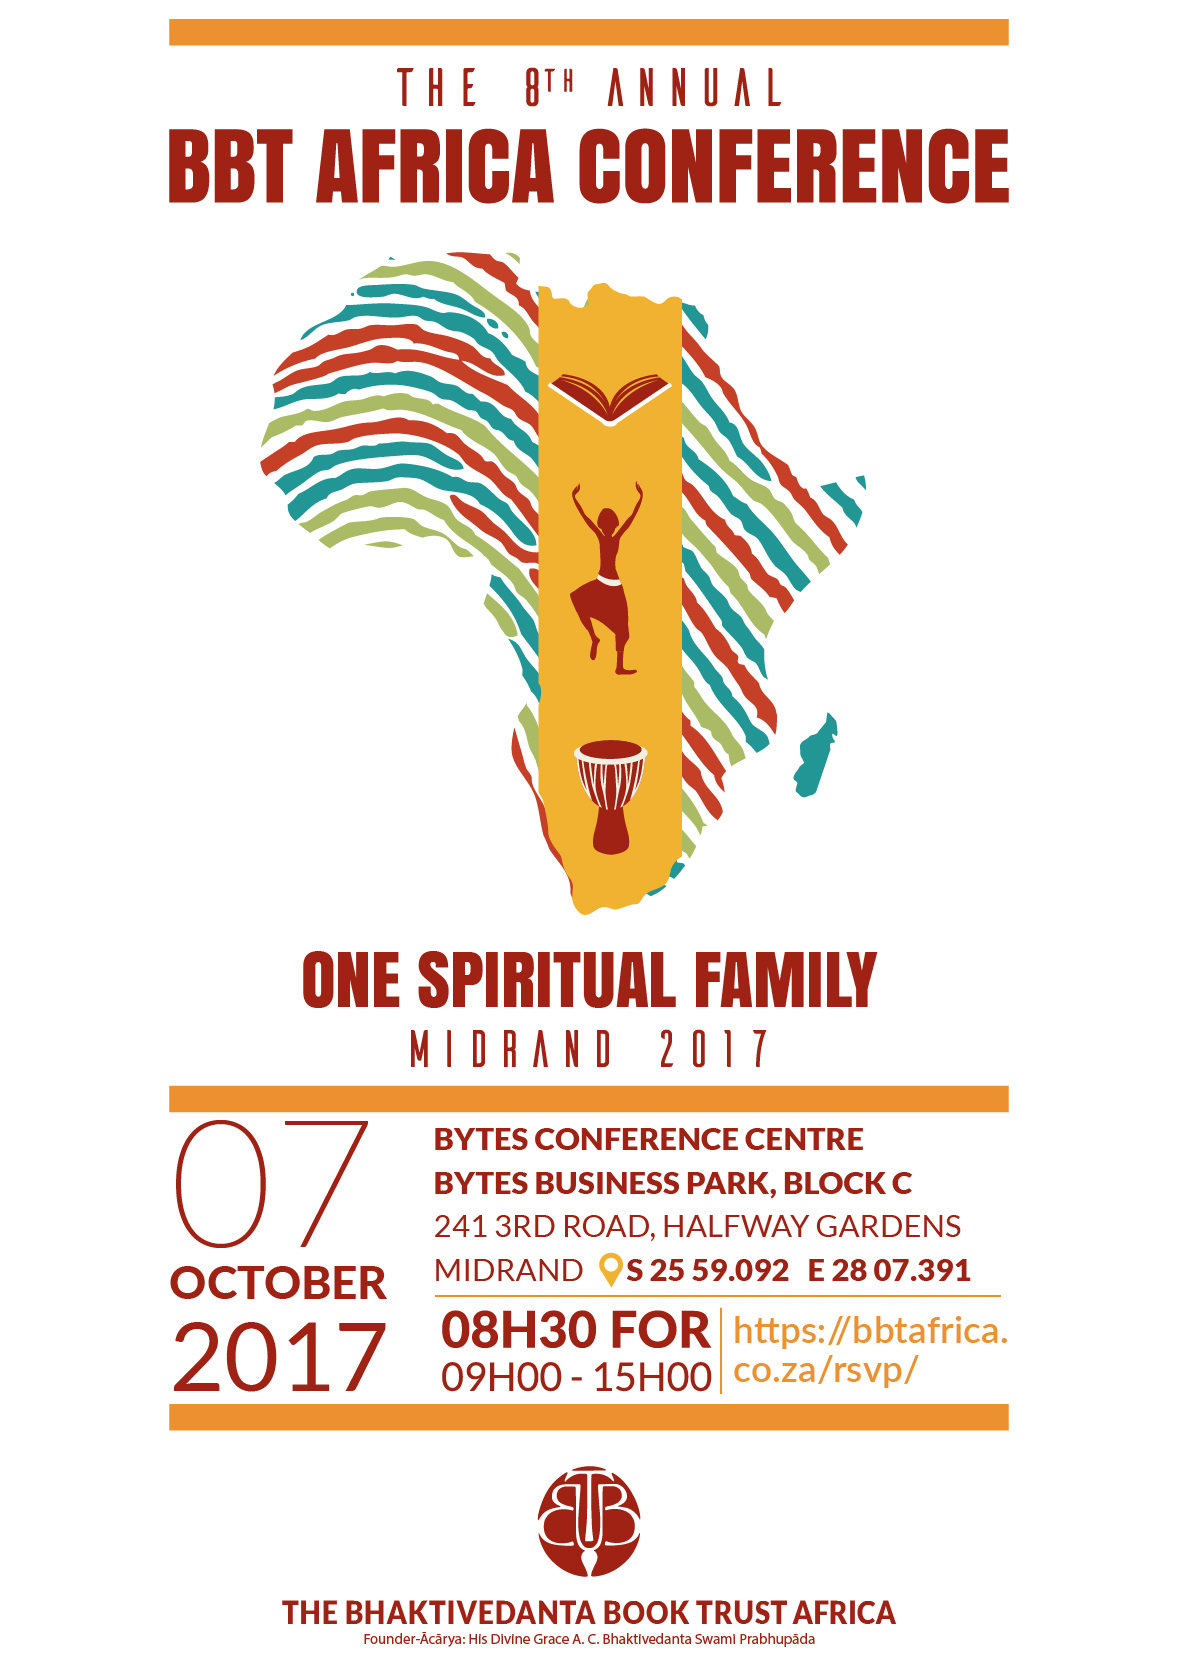 BBT Africa Conference